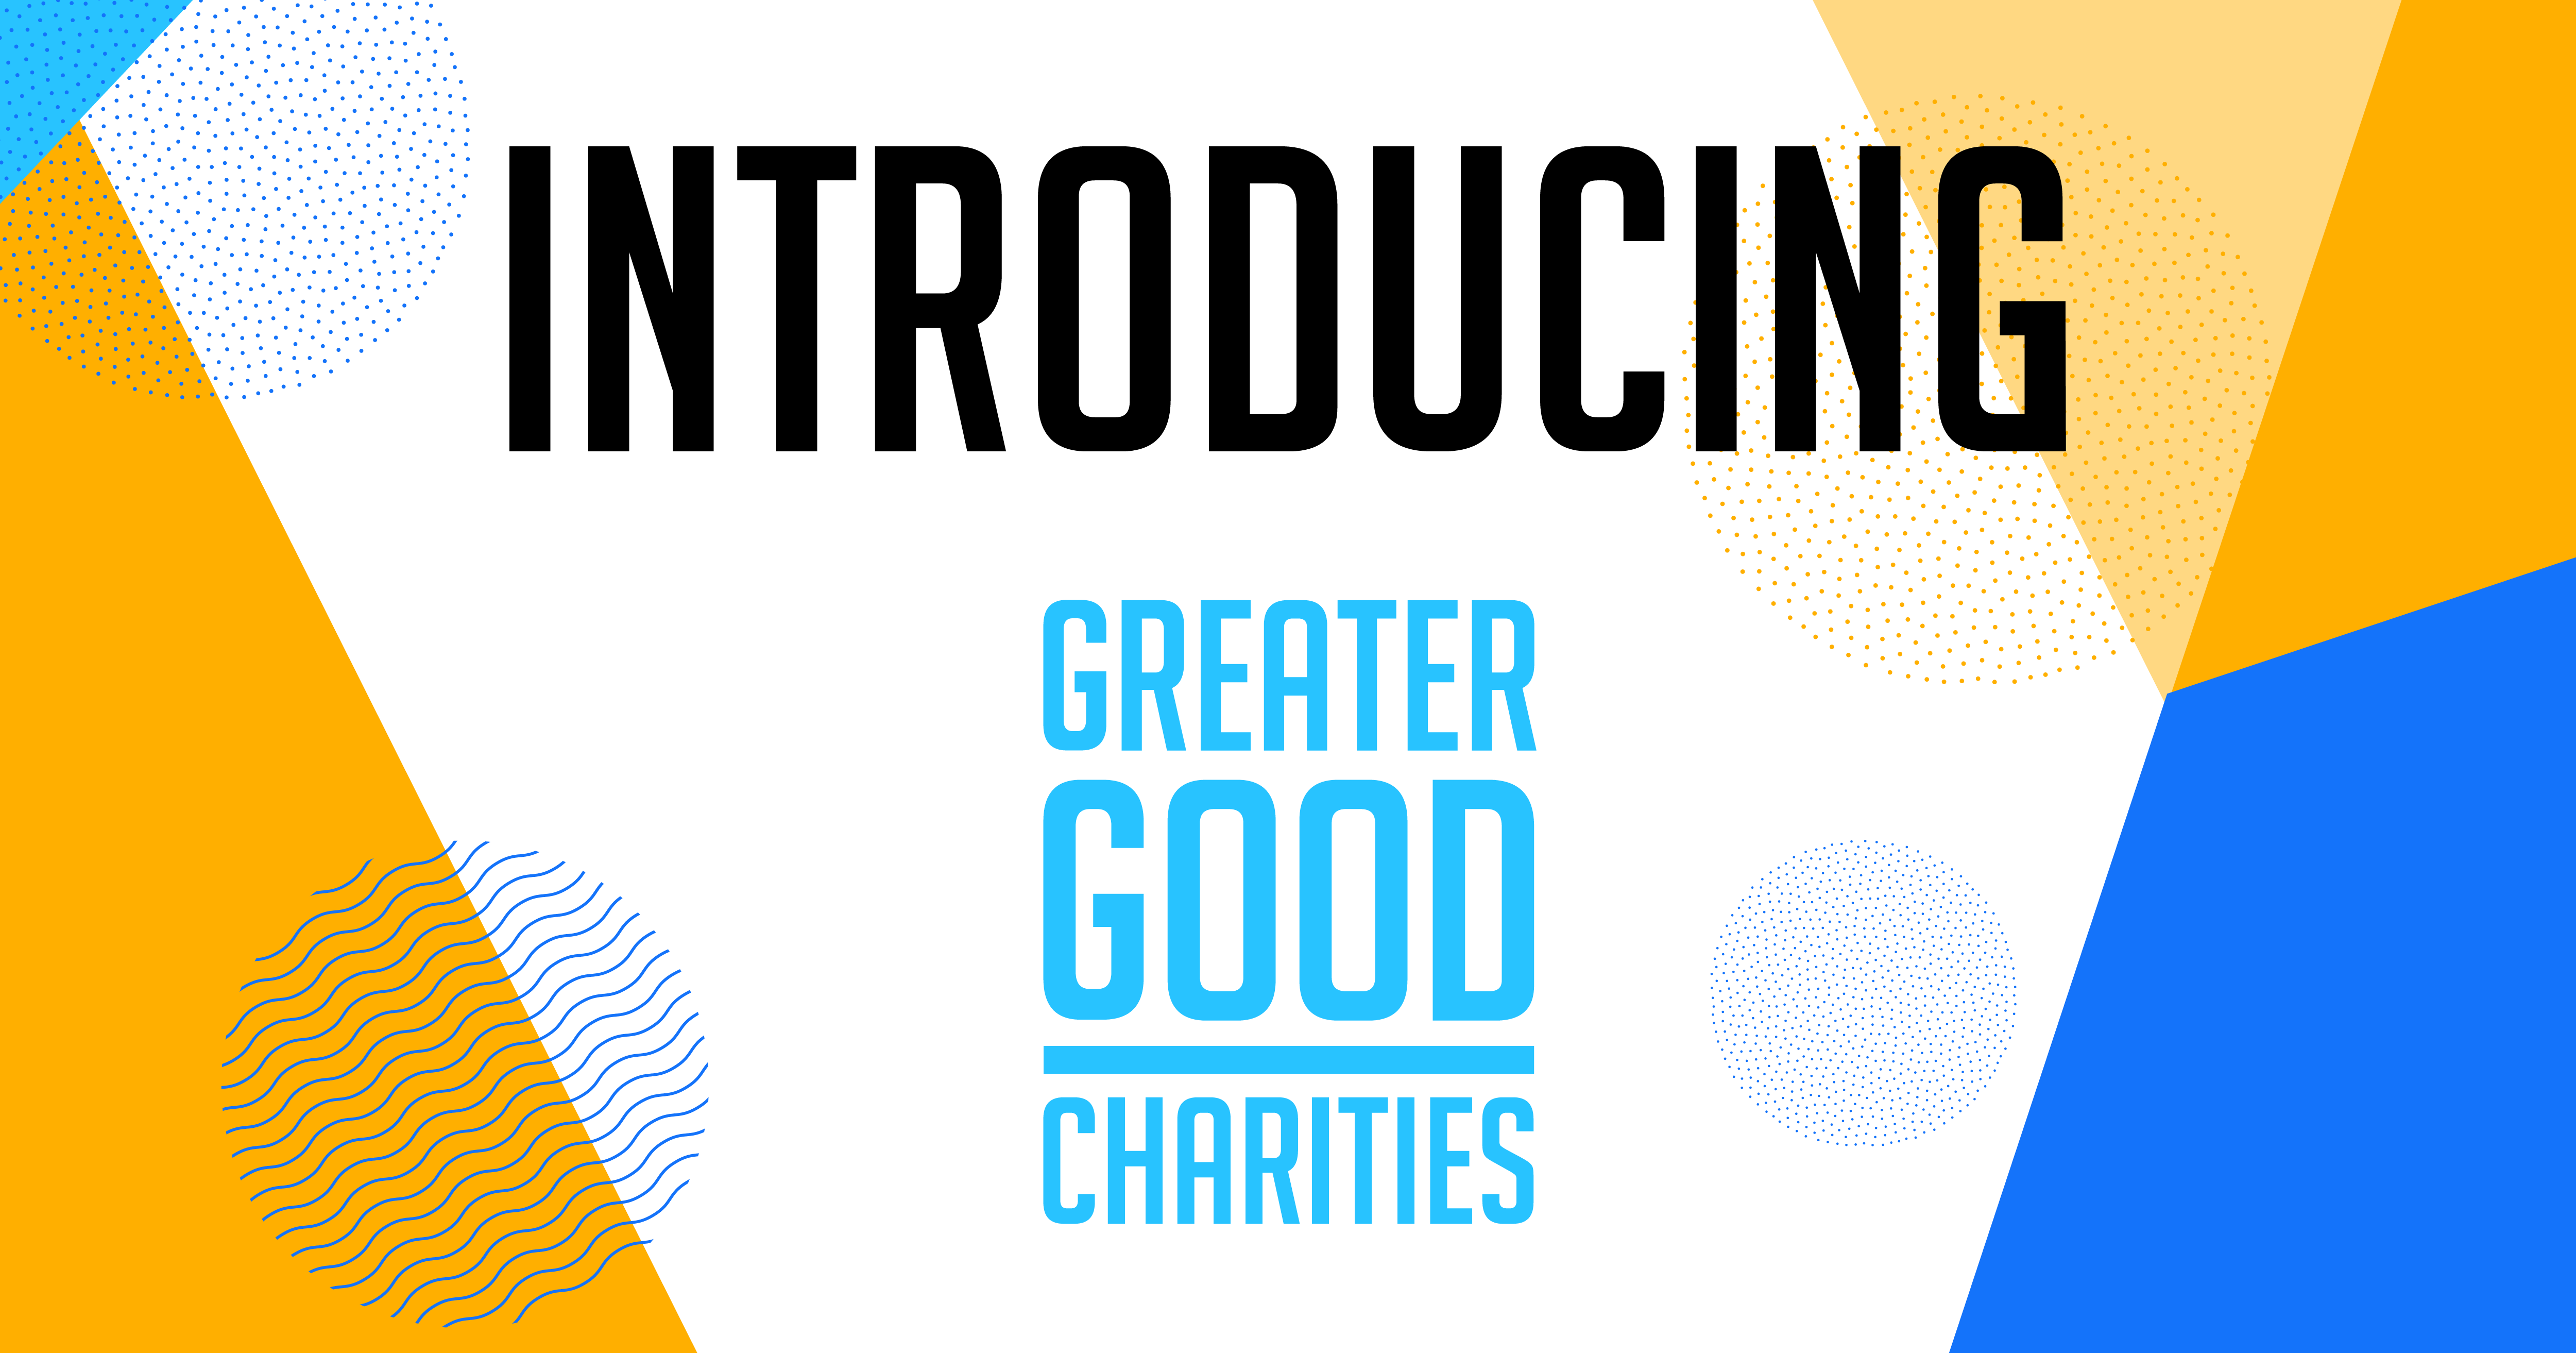 Introducing Greater Good Charities!